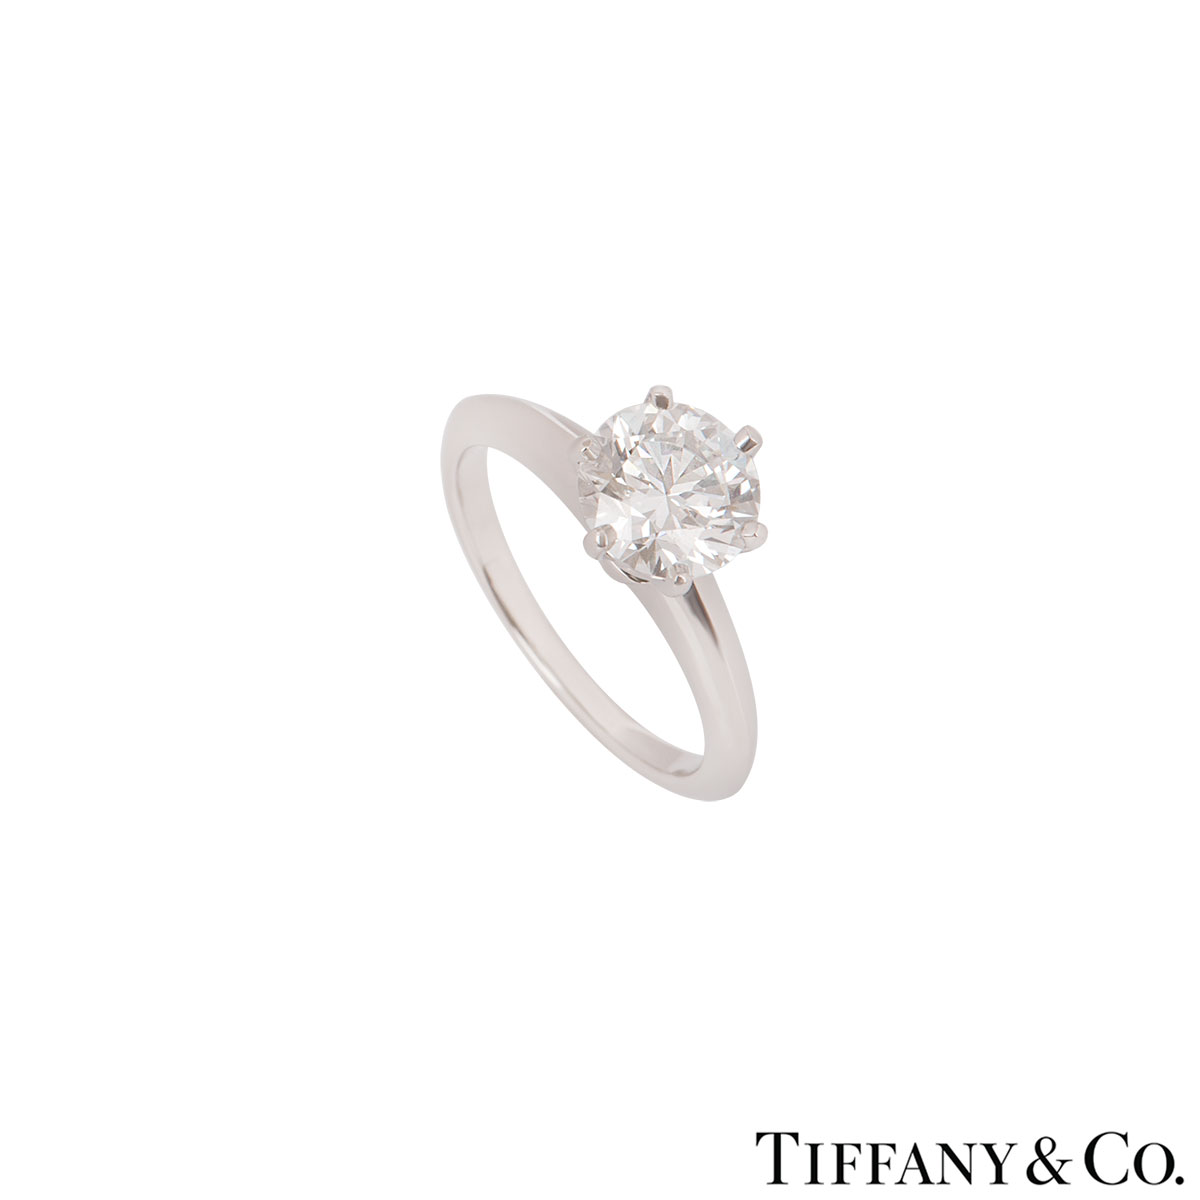 Tiffany & Co. Platinum Diamond Setting Ring 1.39ct H/VVS1 XXX